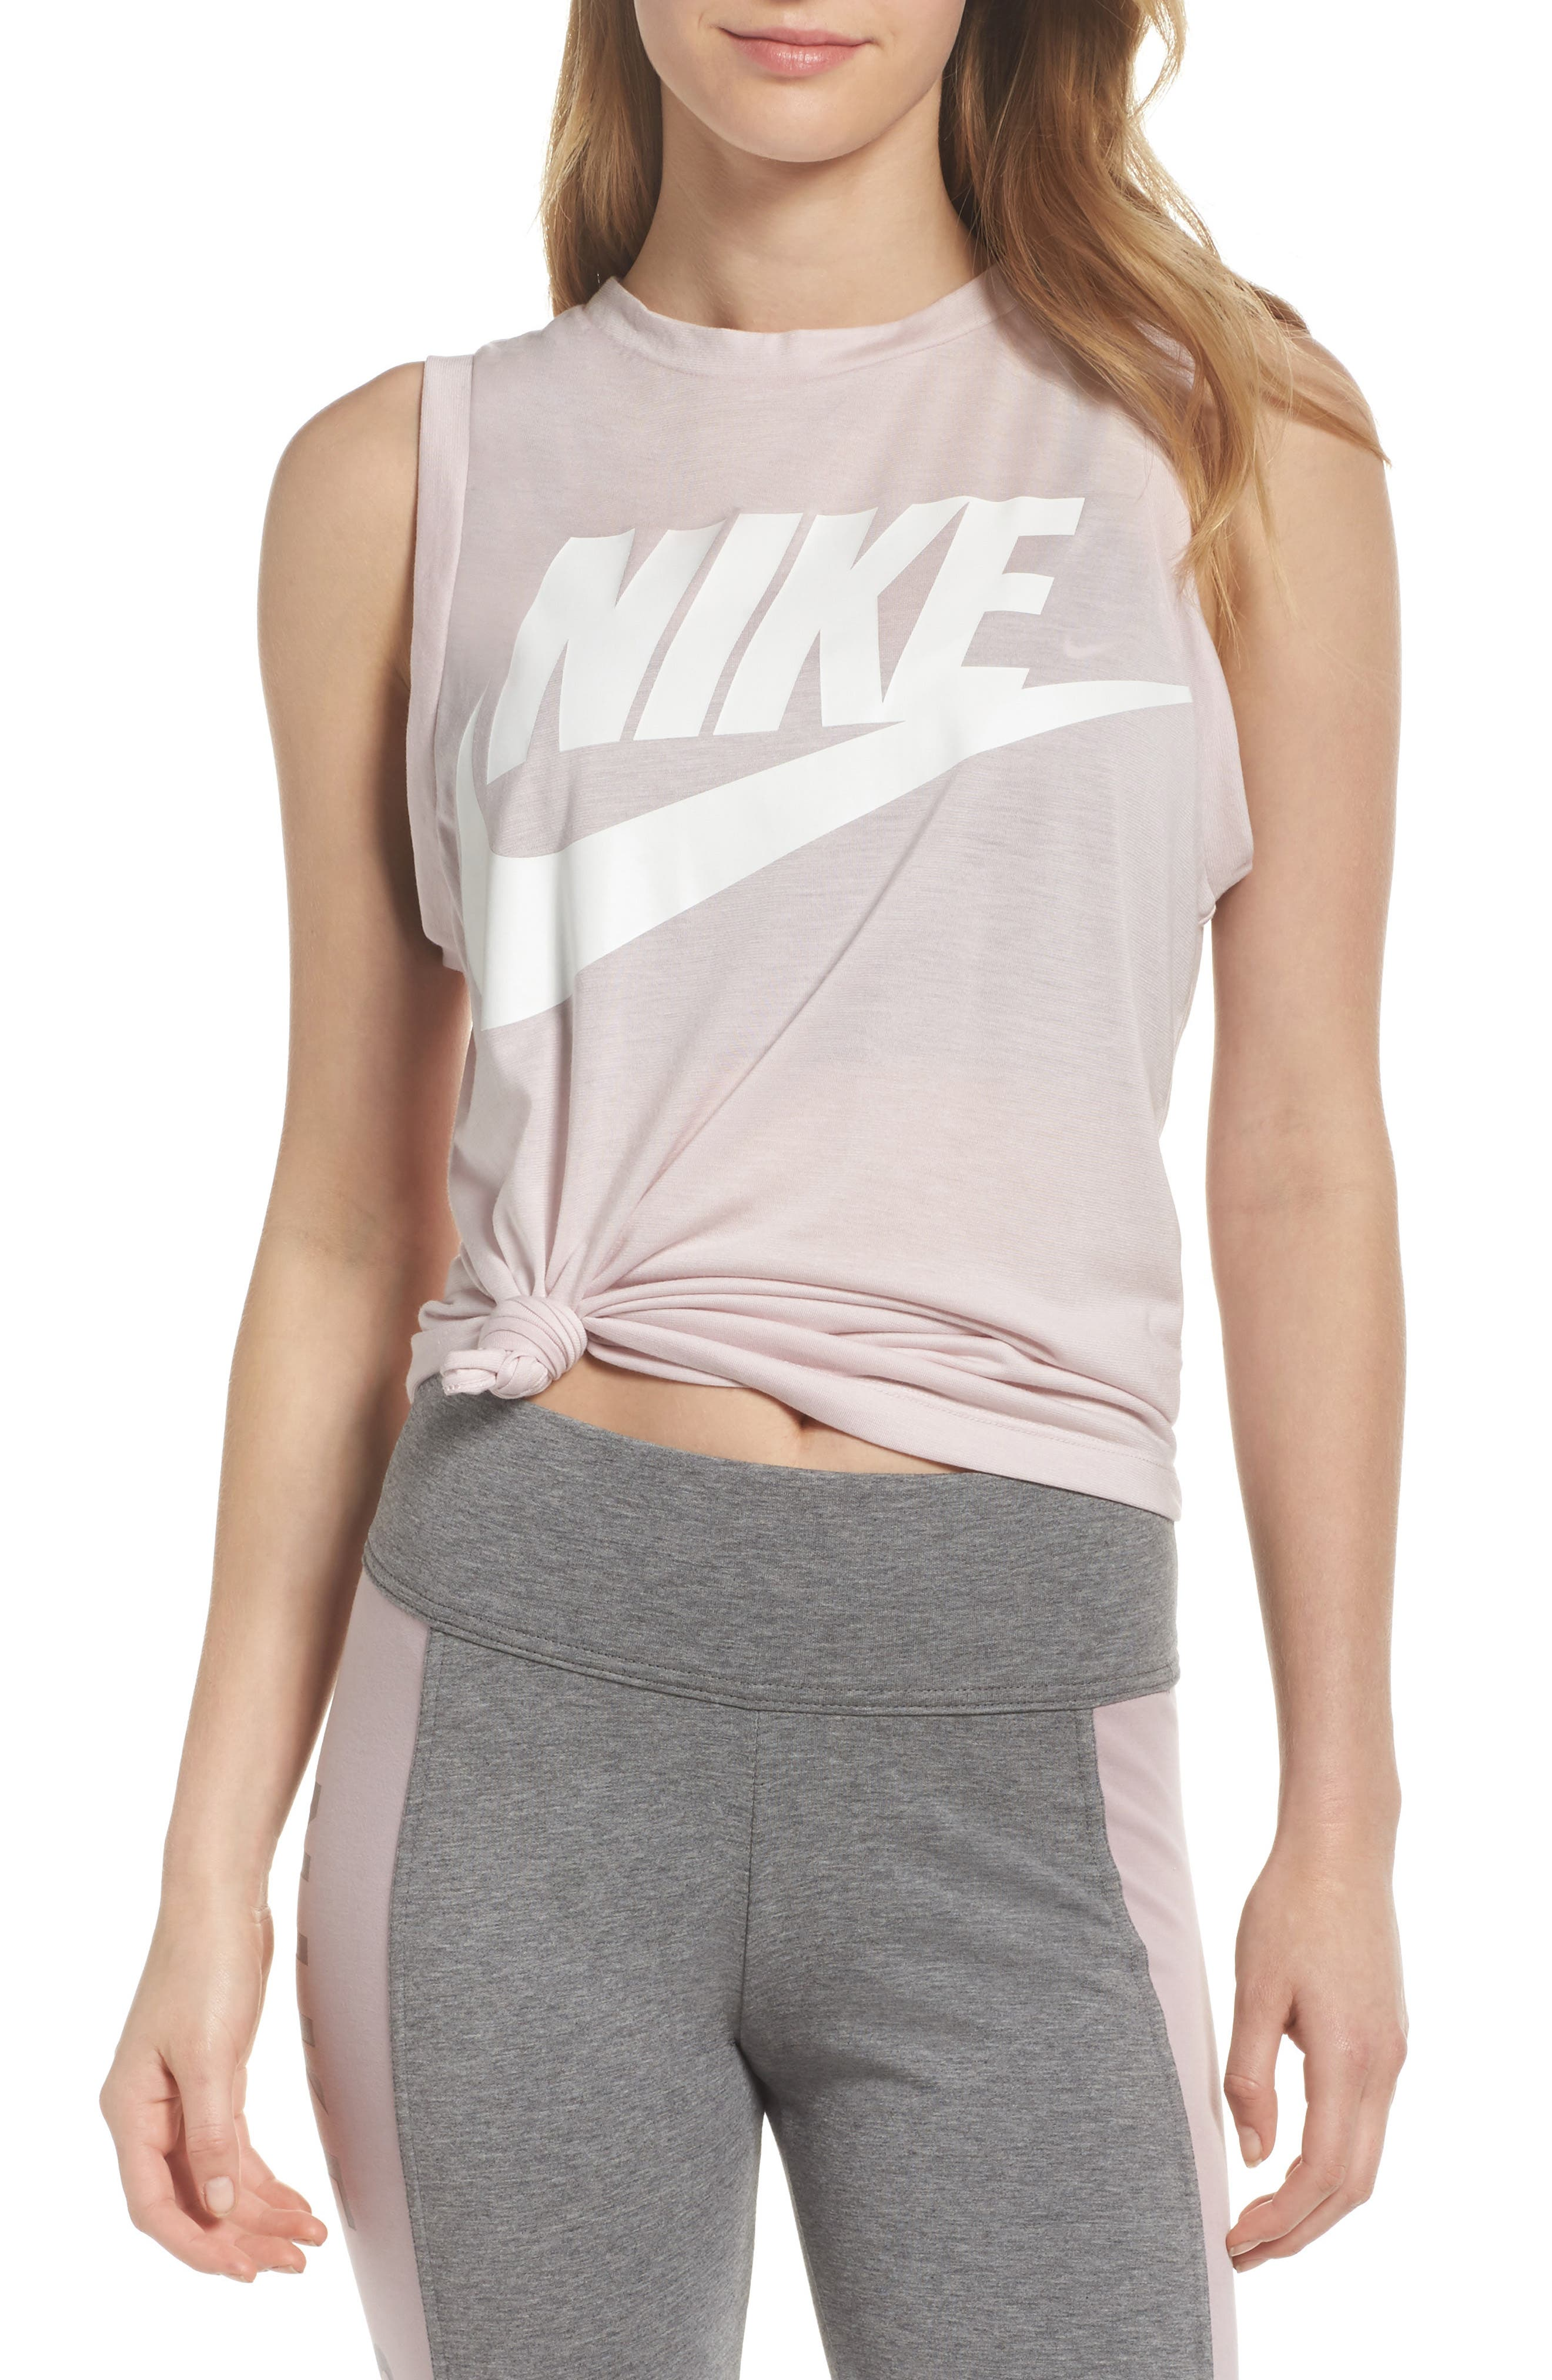 Sportswear Essential Women's Tank,                             Main thumbnail 1, color,                             Barely Rose/ Barely Rose